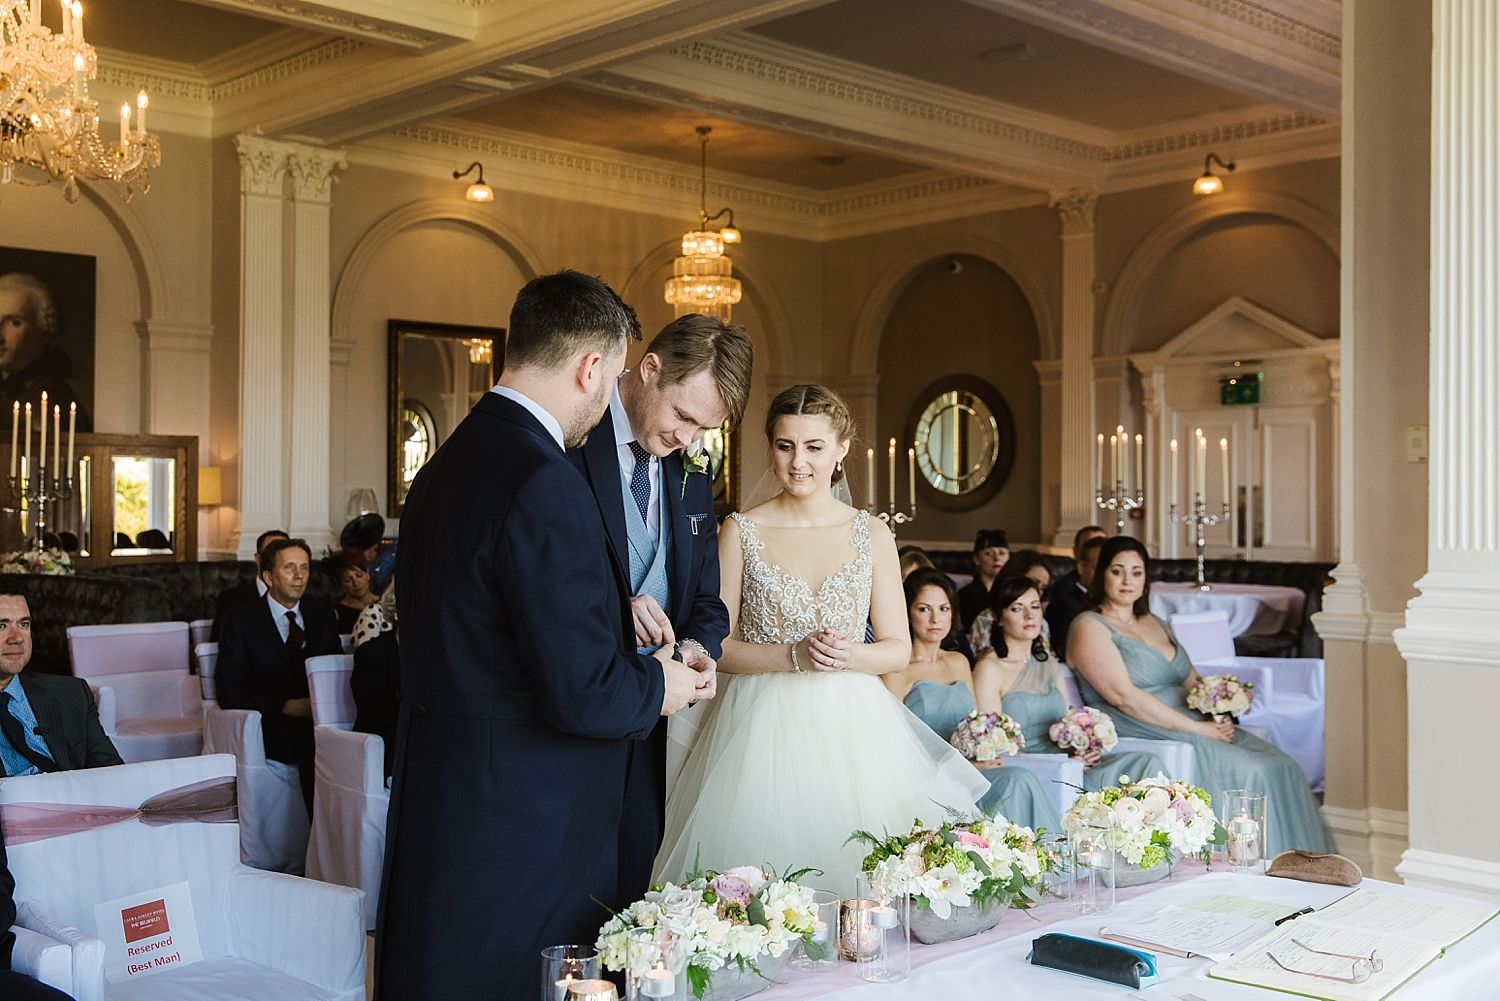 Best man hands over the rings at Belsfield Hotel wedding